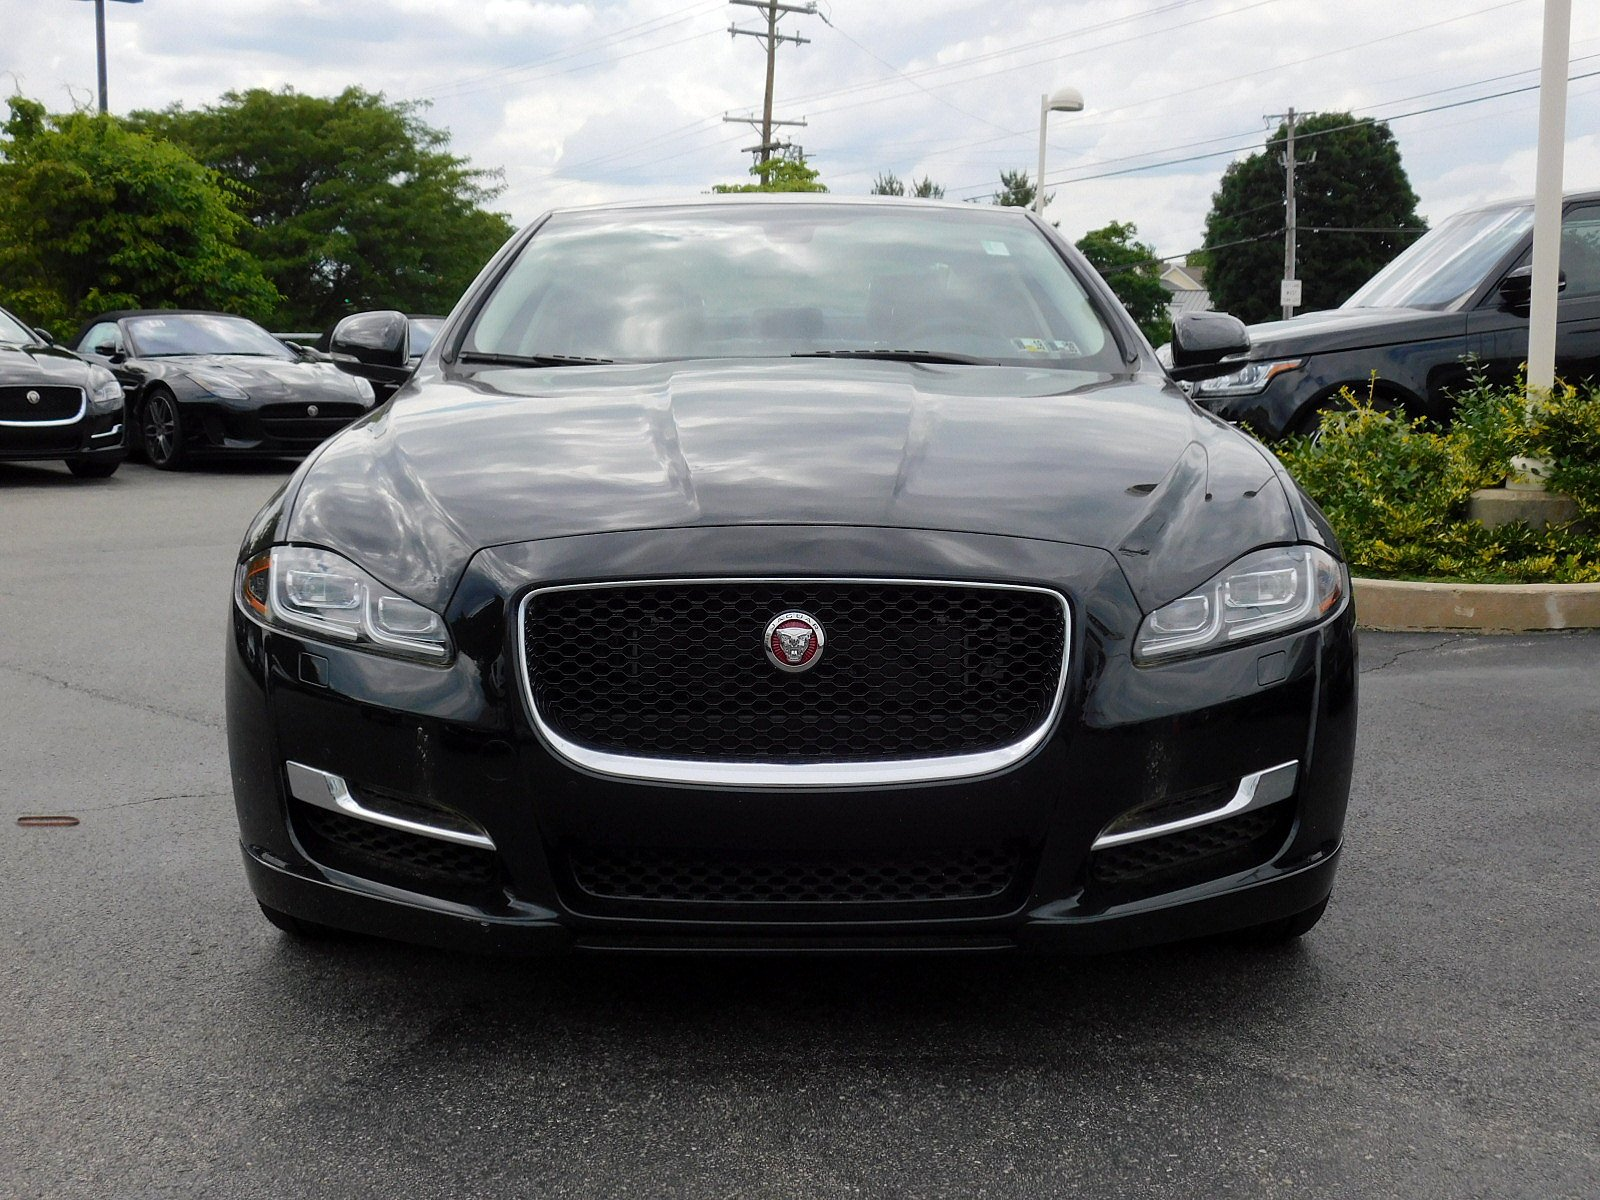 sedan owned awd door xf jaguar inventory sport used in cincinnati pre